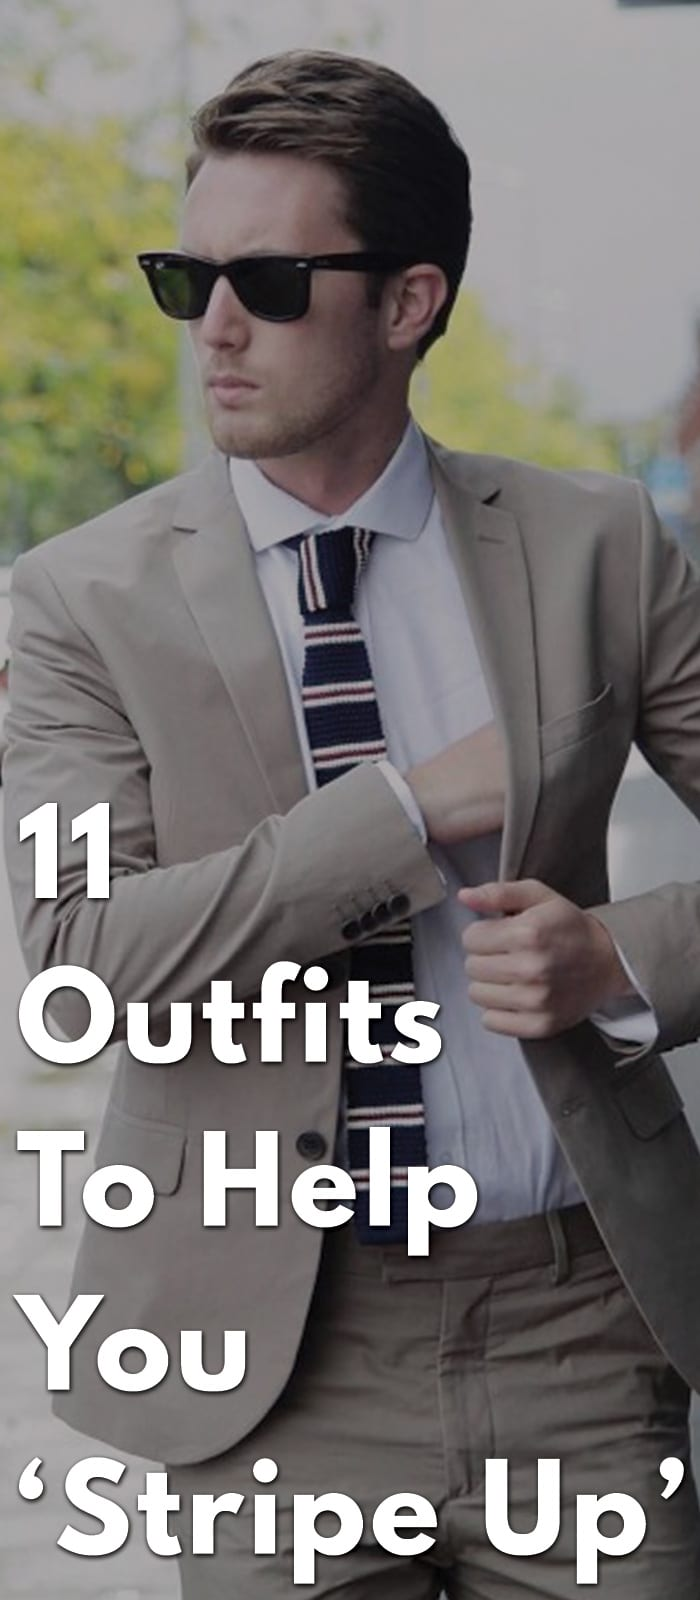 11-Outfits-to-Help-You-'Stripe-Up'